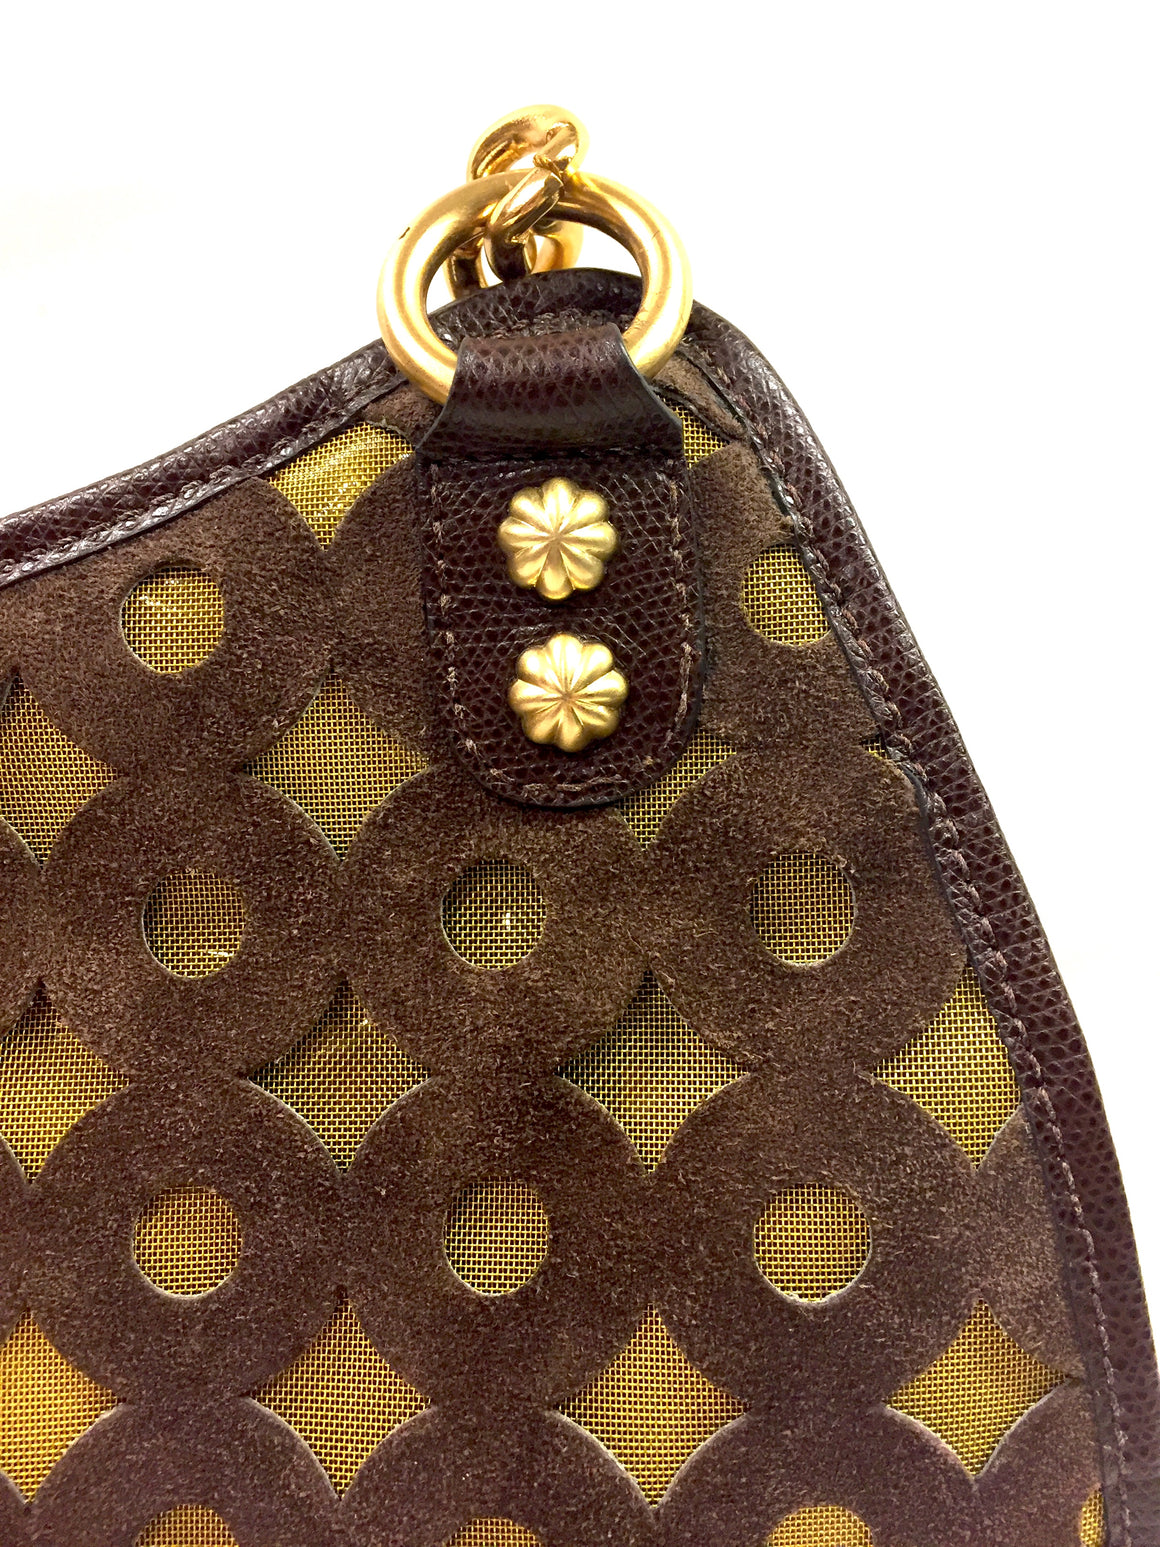 ERIC JAVITS Brown Circle-Patterned Suede & Metallic Gold Shoulder Bag